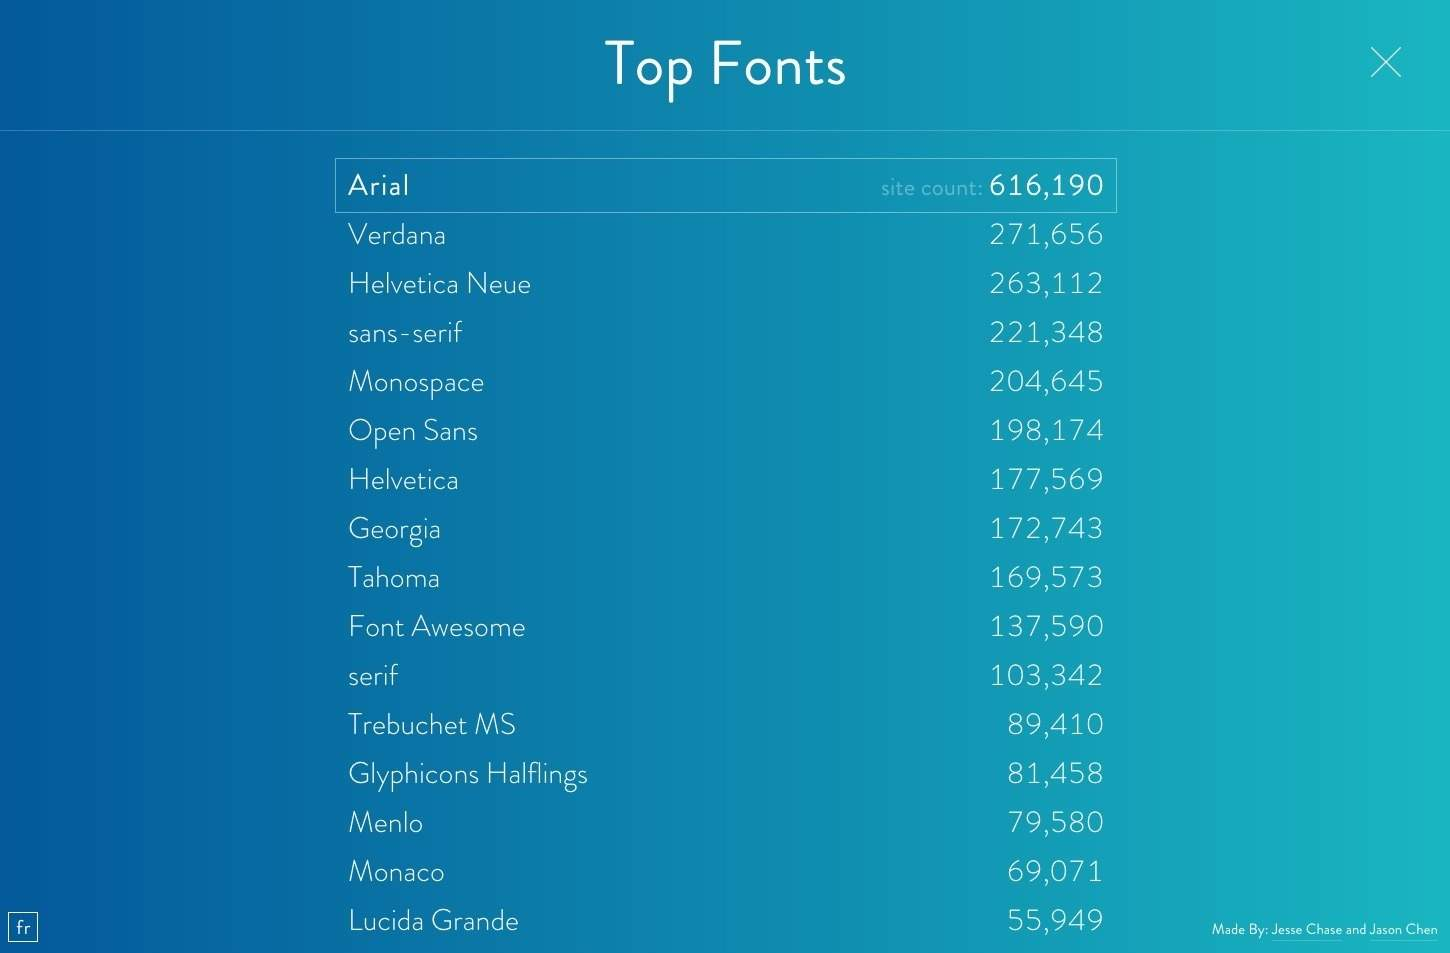 Top Fonts on Fontreach